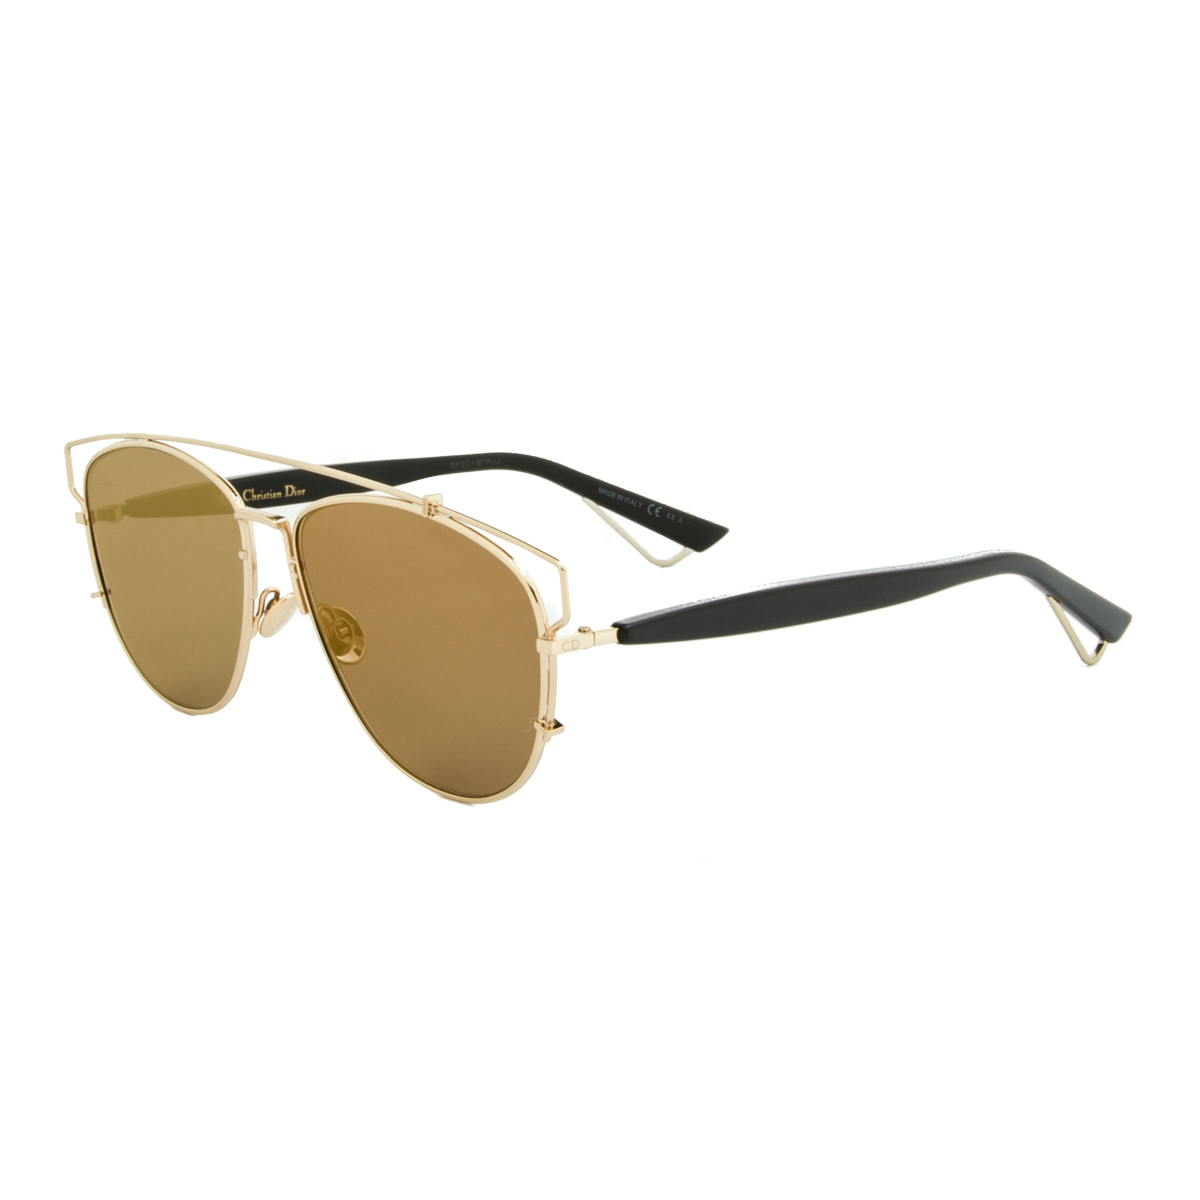 42d5ab4e00b Dior Technologic Sunglasses